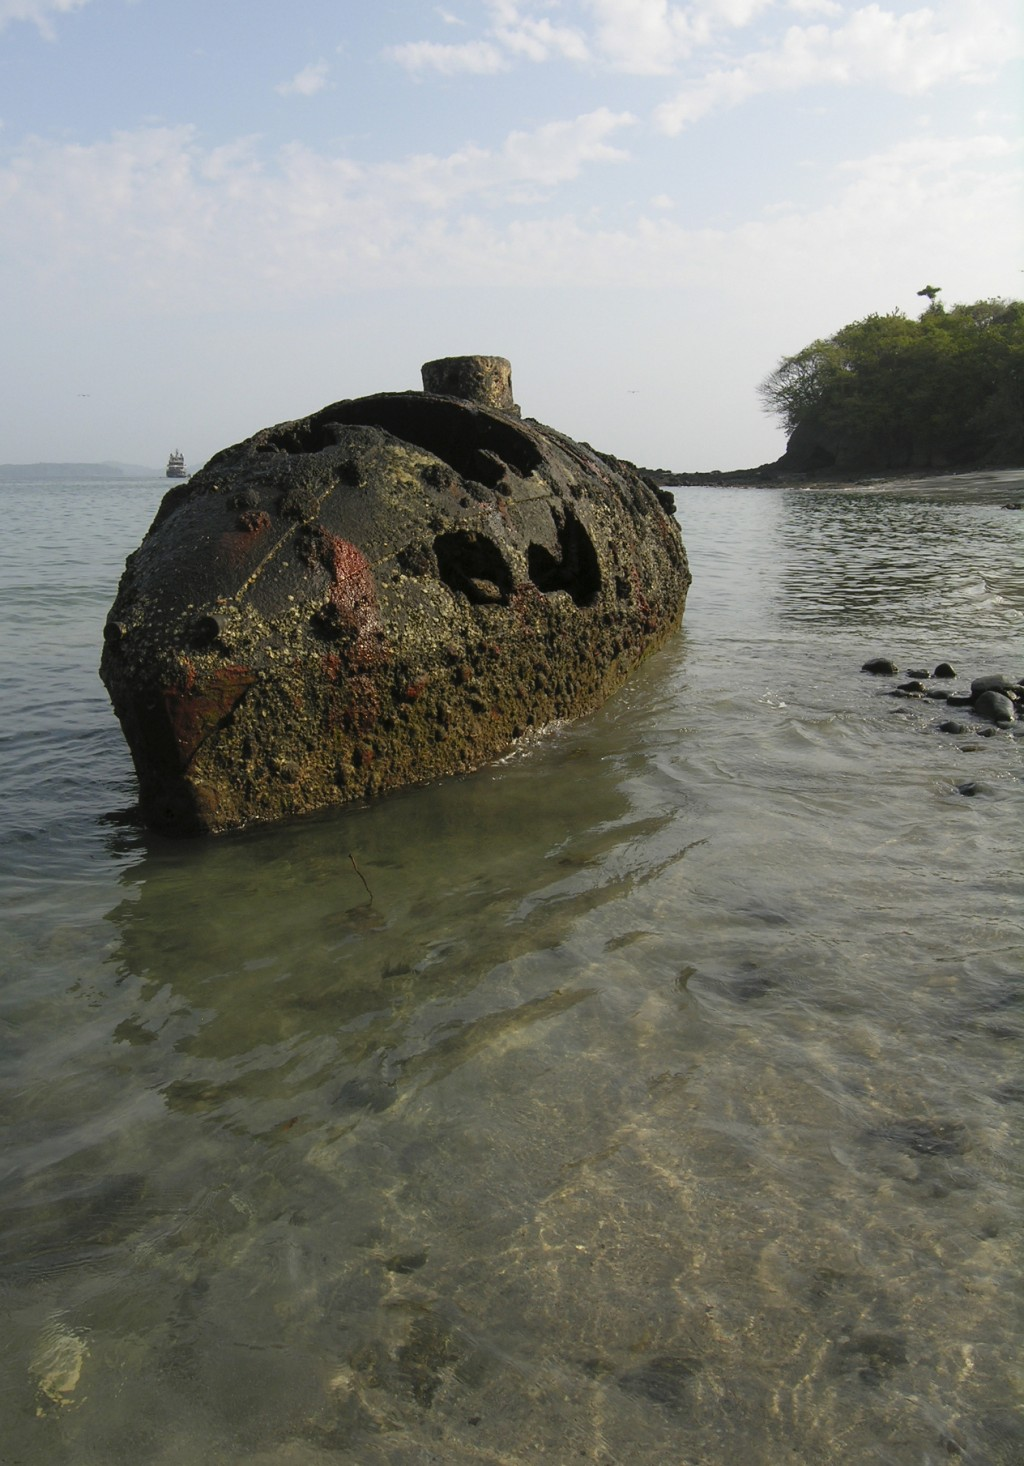 In this March 12, 2004 photo provided by the U.S. embassy in Panama, the submarine designed by Julius H. Kroehl emerges from the water during low tide